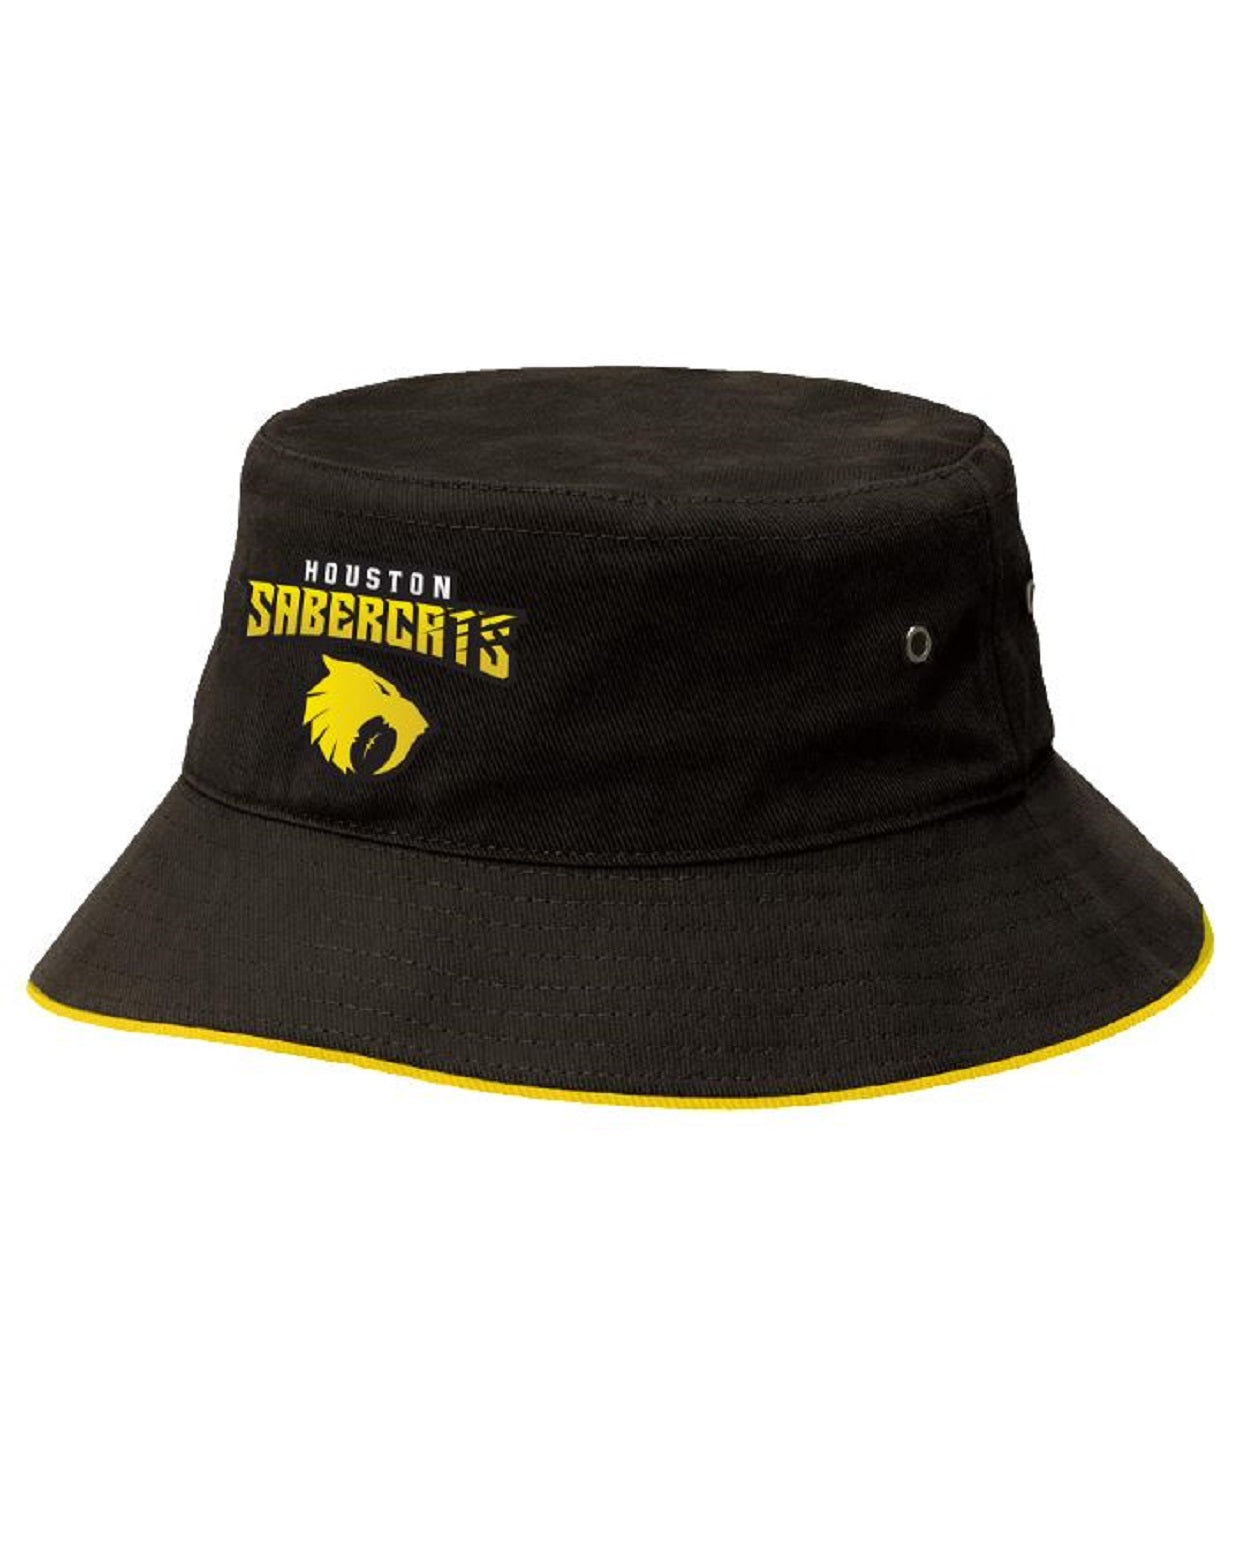 Sabercats Bucket Hat